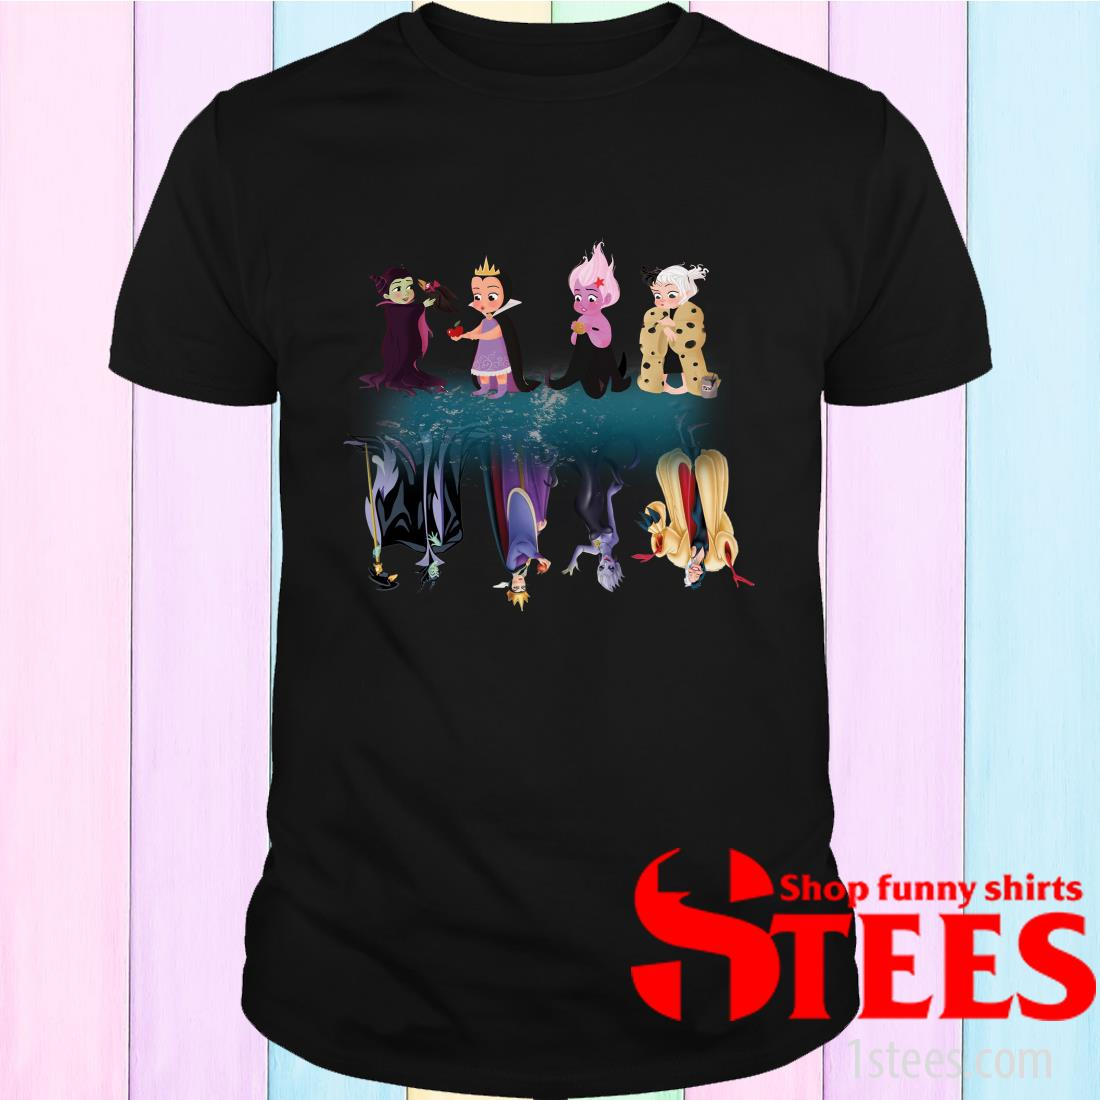 Maleficent Characters Water Mirror Shirt